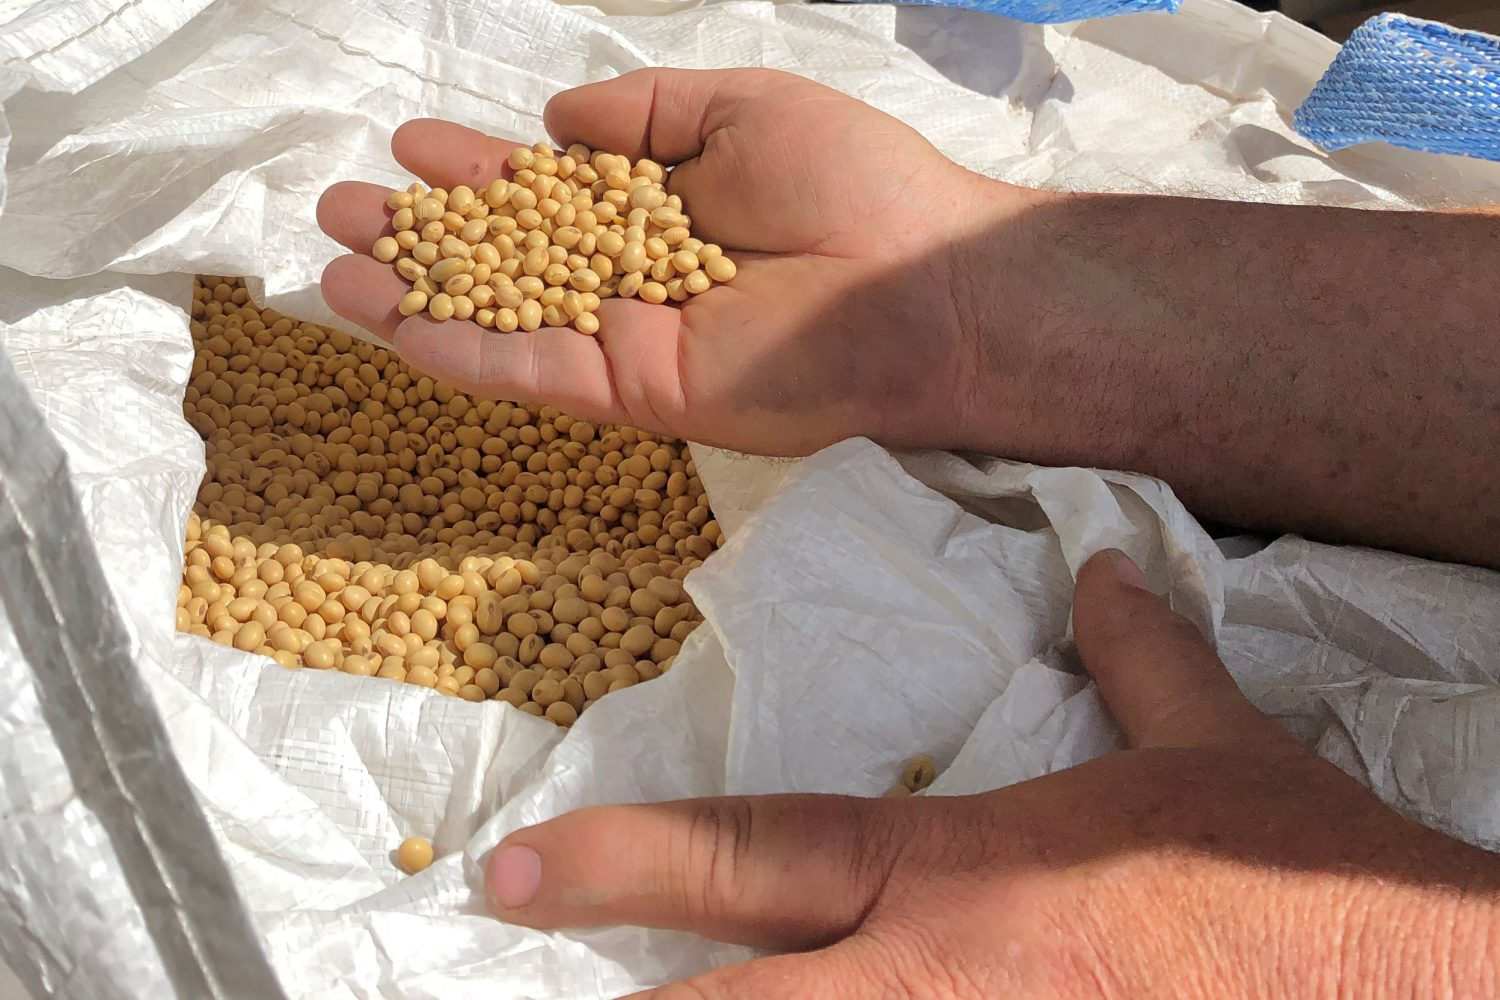 FILE PHOTO: Farmer Dave Walton holds soybeans in Wilton, Iowa, U.S. May 22, 2019. Picture taken May 22, 2019. REUTERS/Kia Johnson